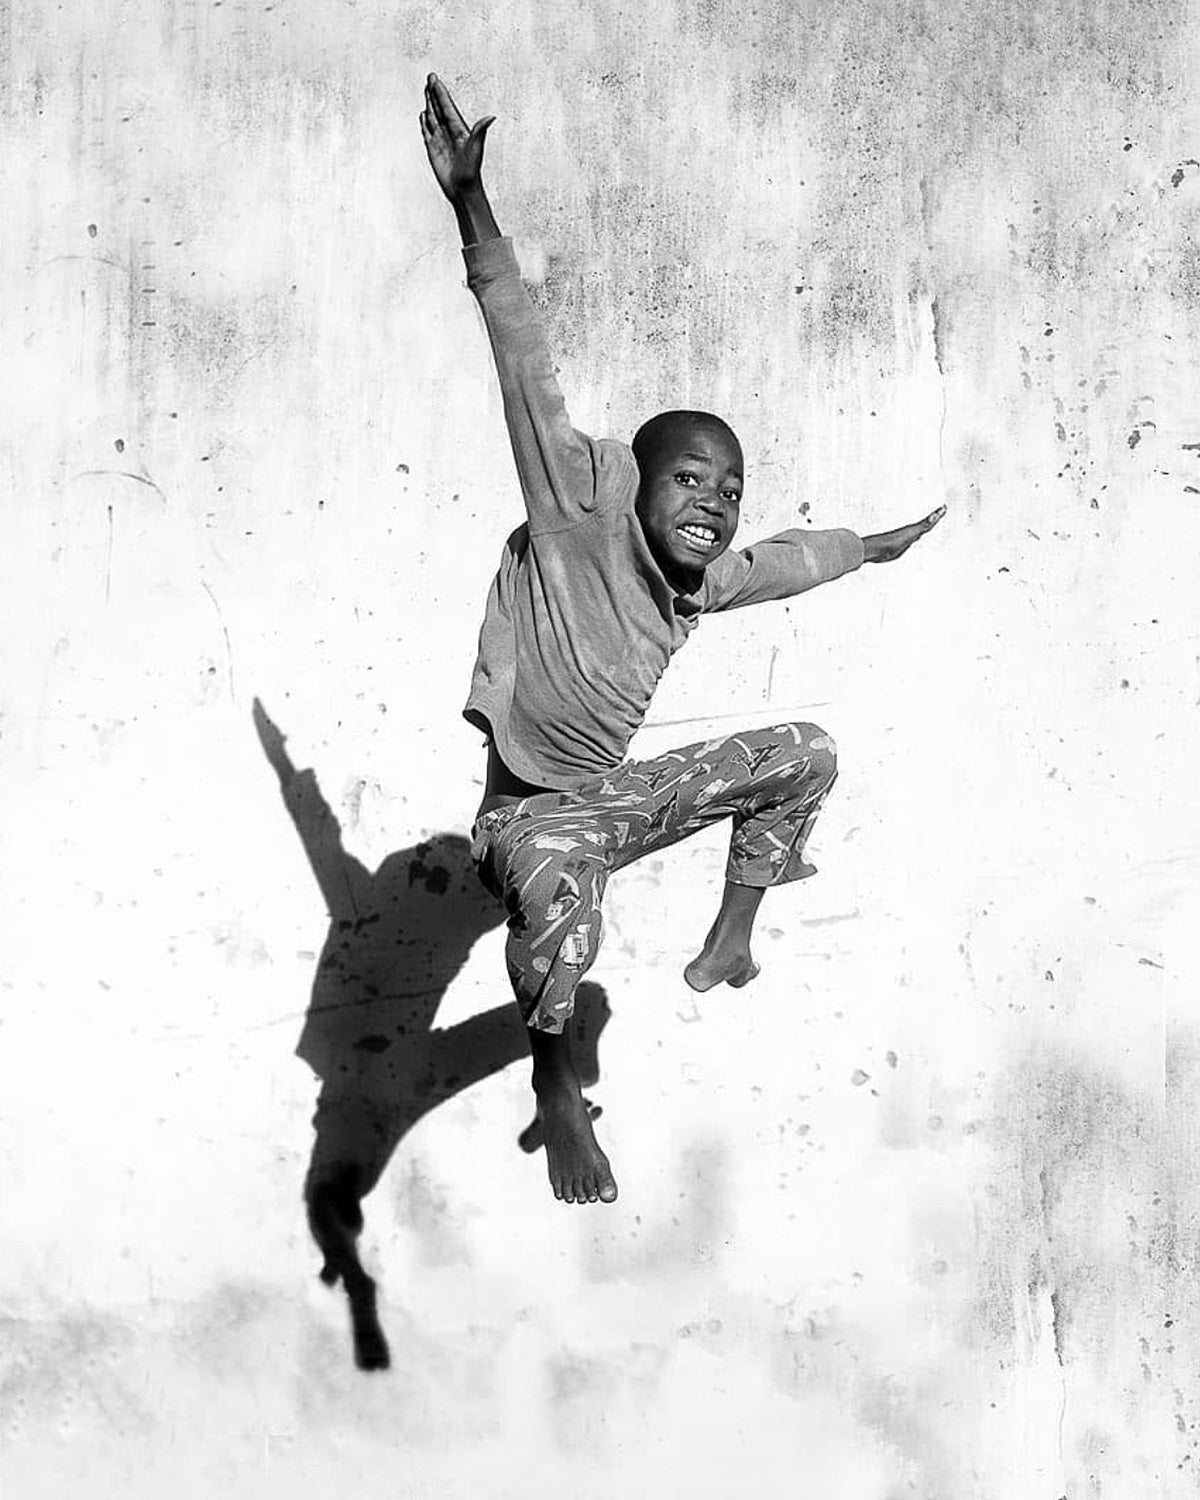 Safari Journal / Blog by Safari Fusion | Ultimate Grey + illuminating | Pantone Color of the Year 2021 | Jumping boy, Maputo Mozambique | Photographer © Grégory Escande